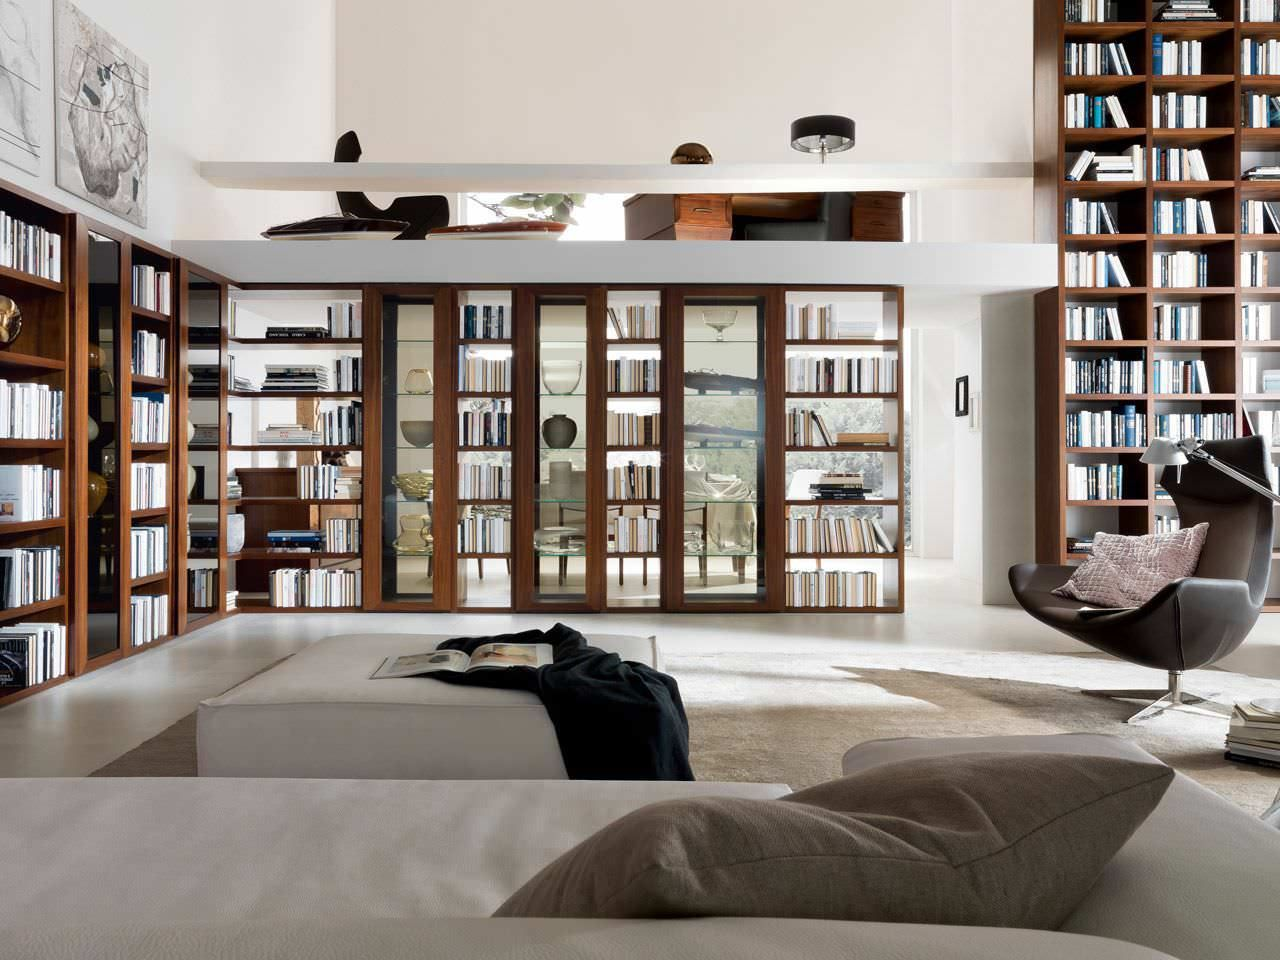 Home Library Furniture: Amazing White Home Library Design With Modern  Wooden Bookcase Furniture Ideas In